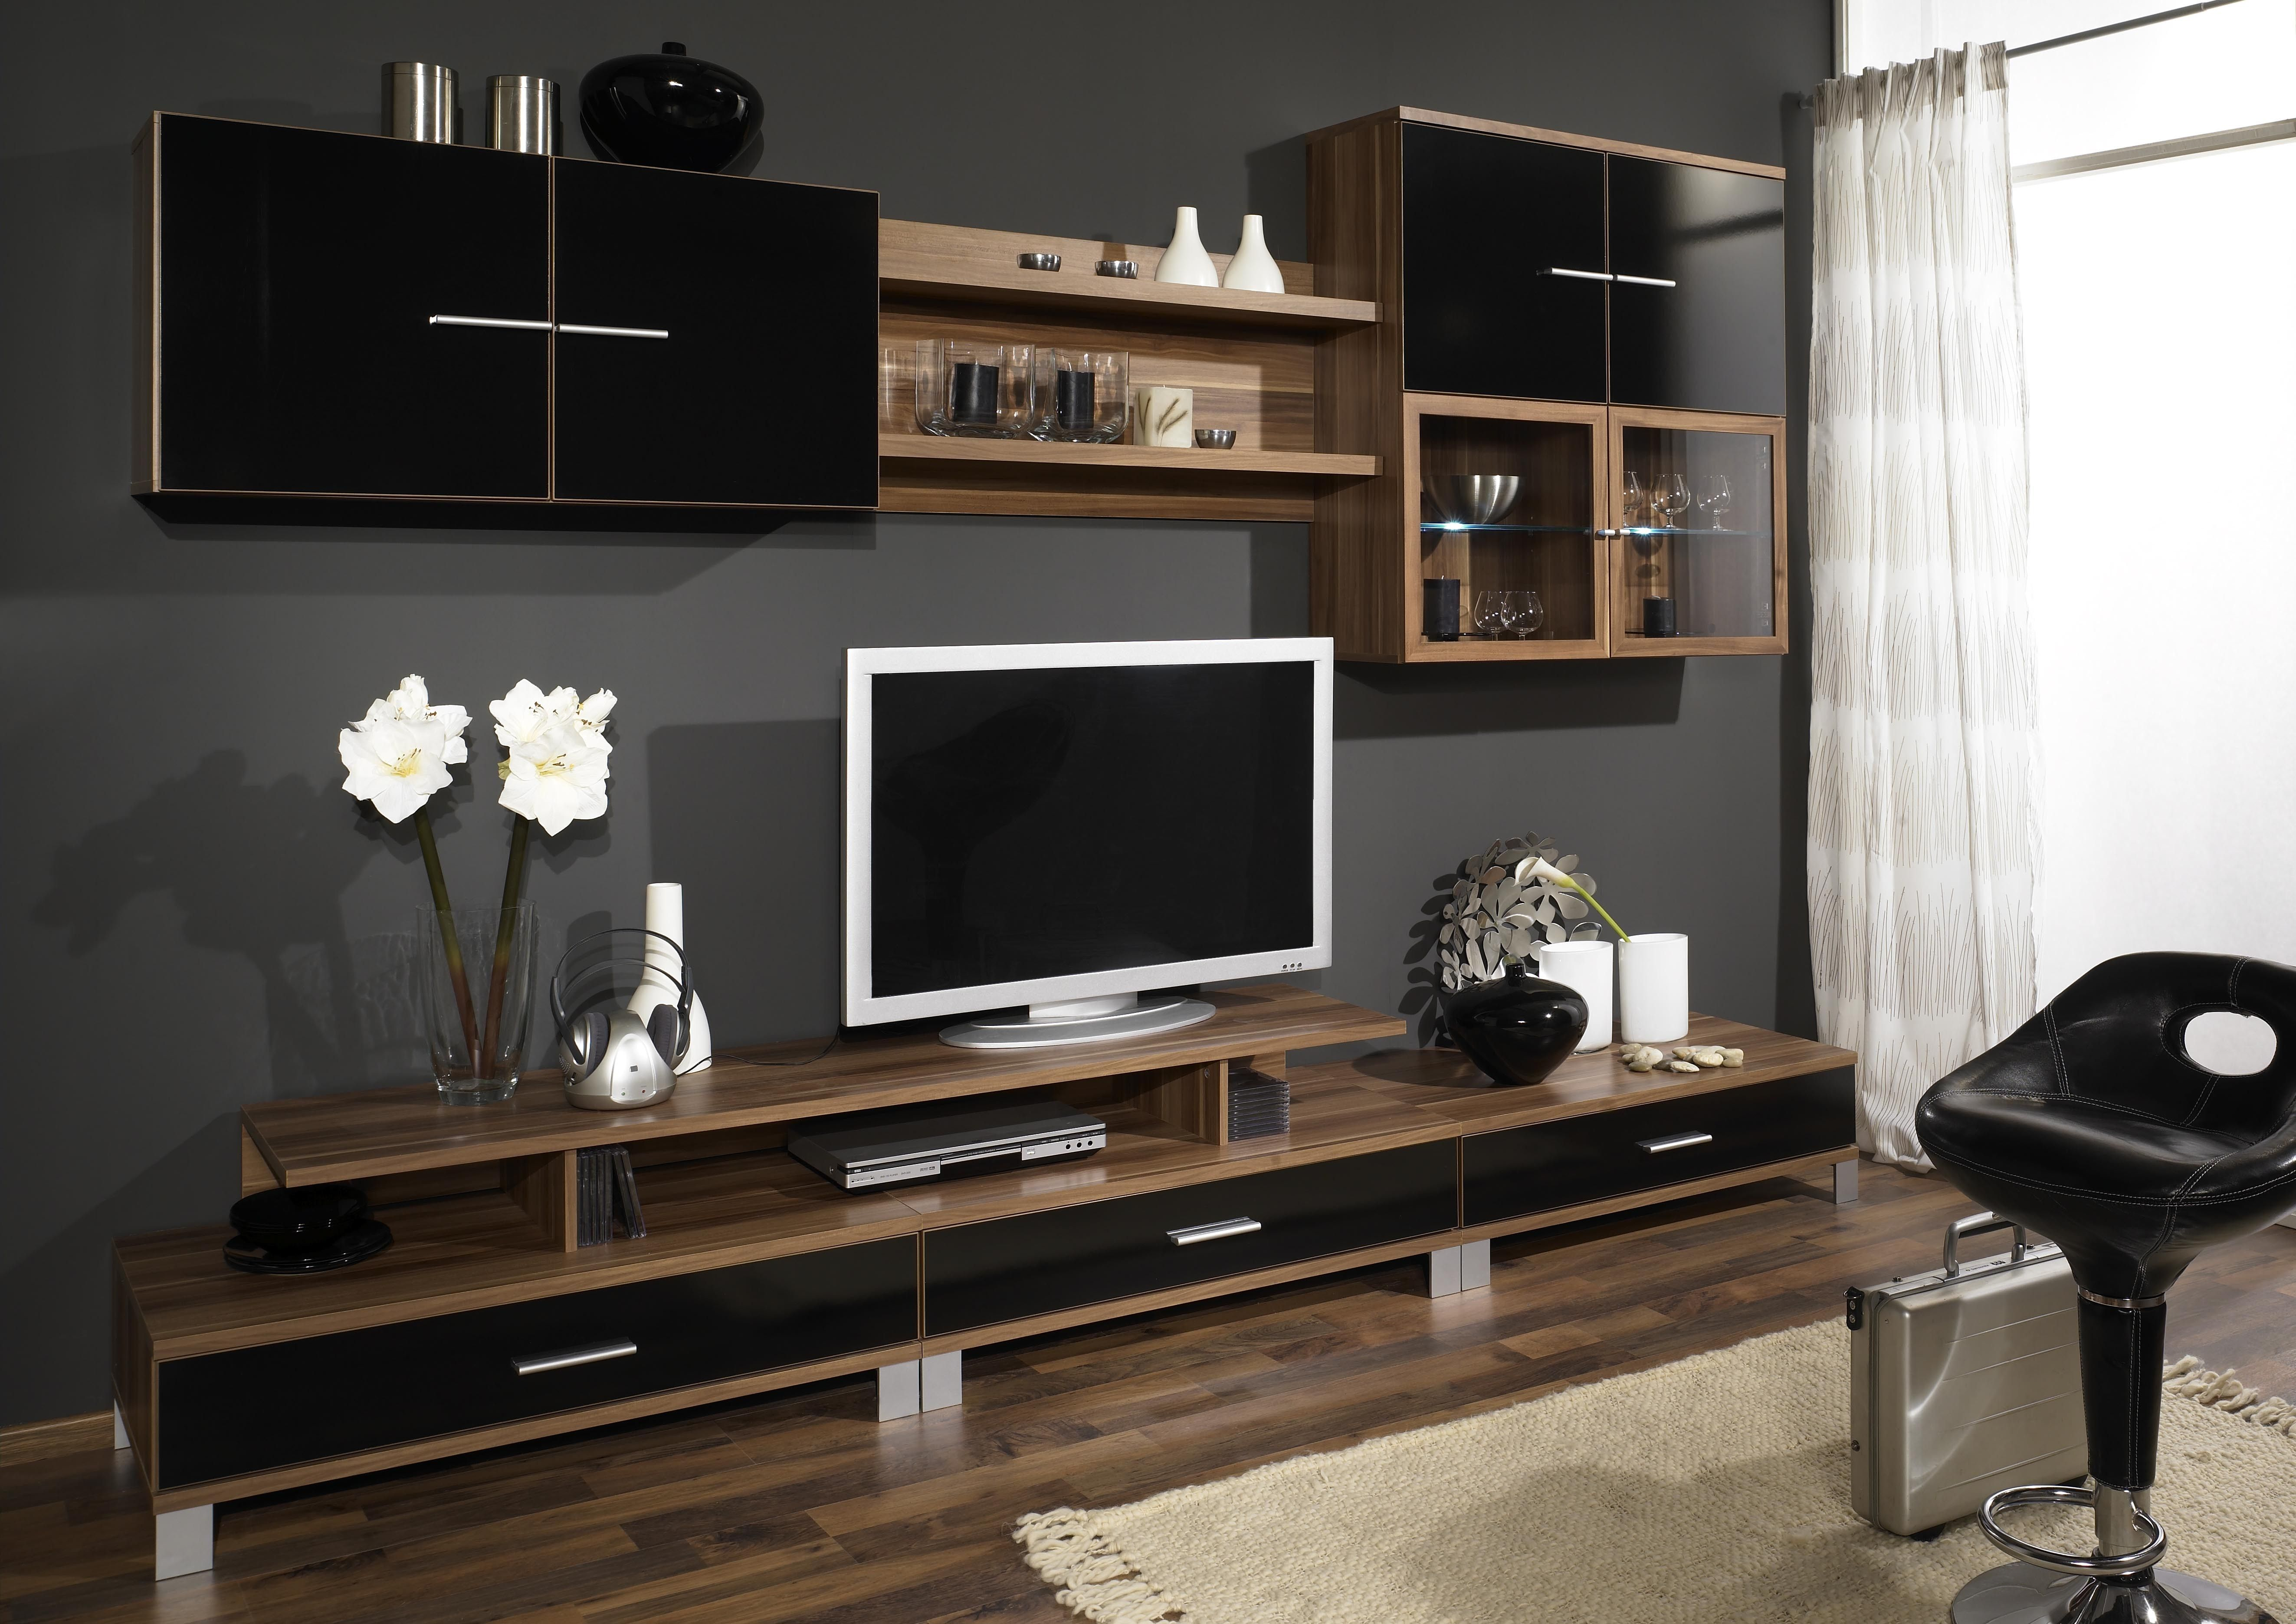 Best Of Modern Wall Units for Tv